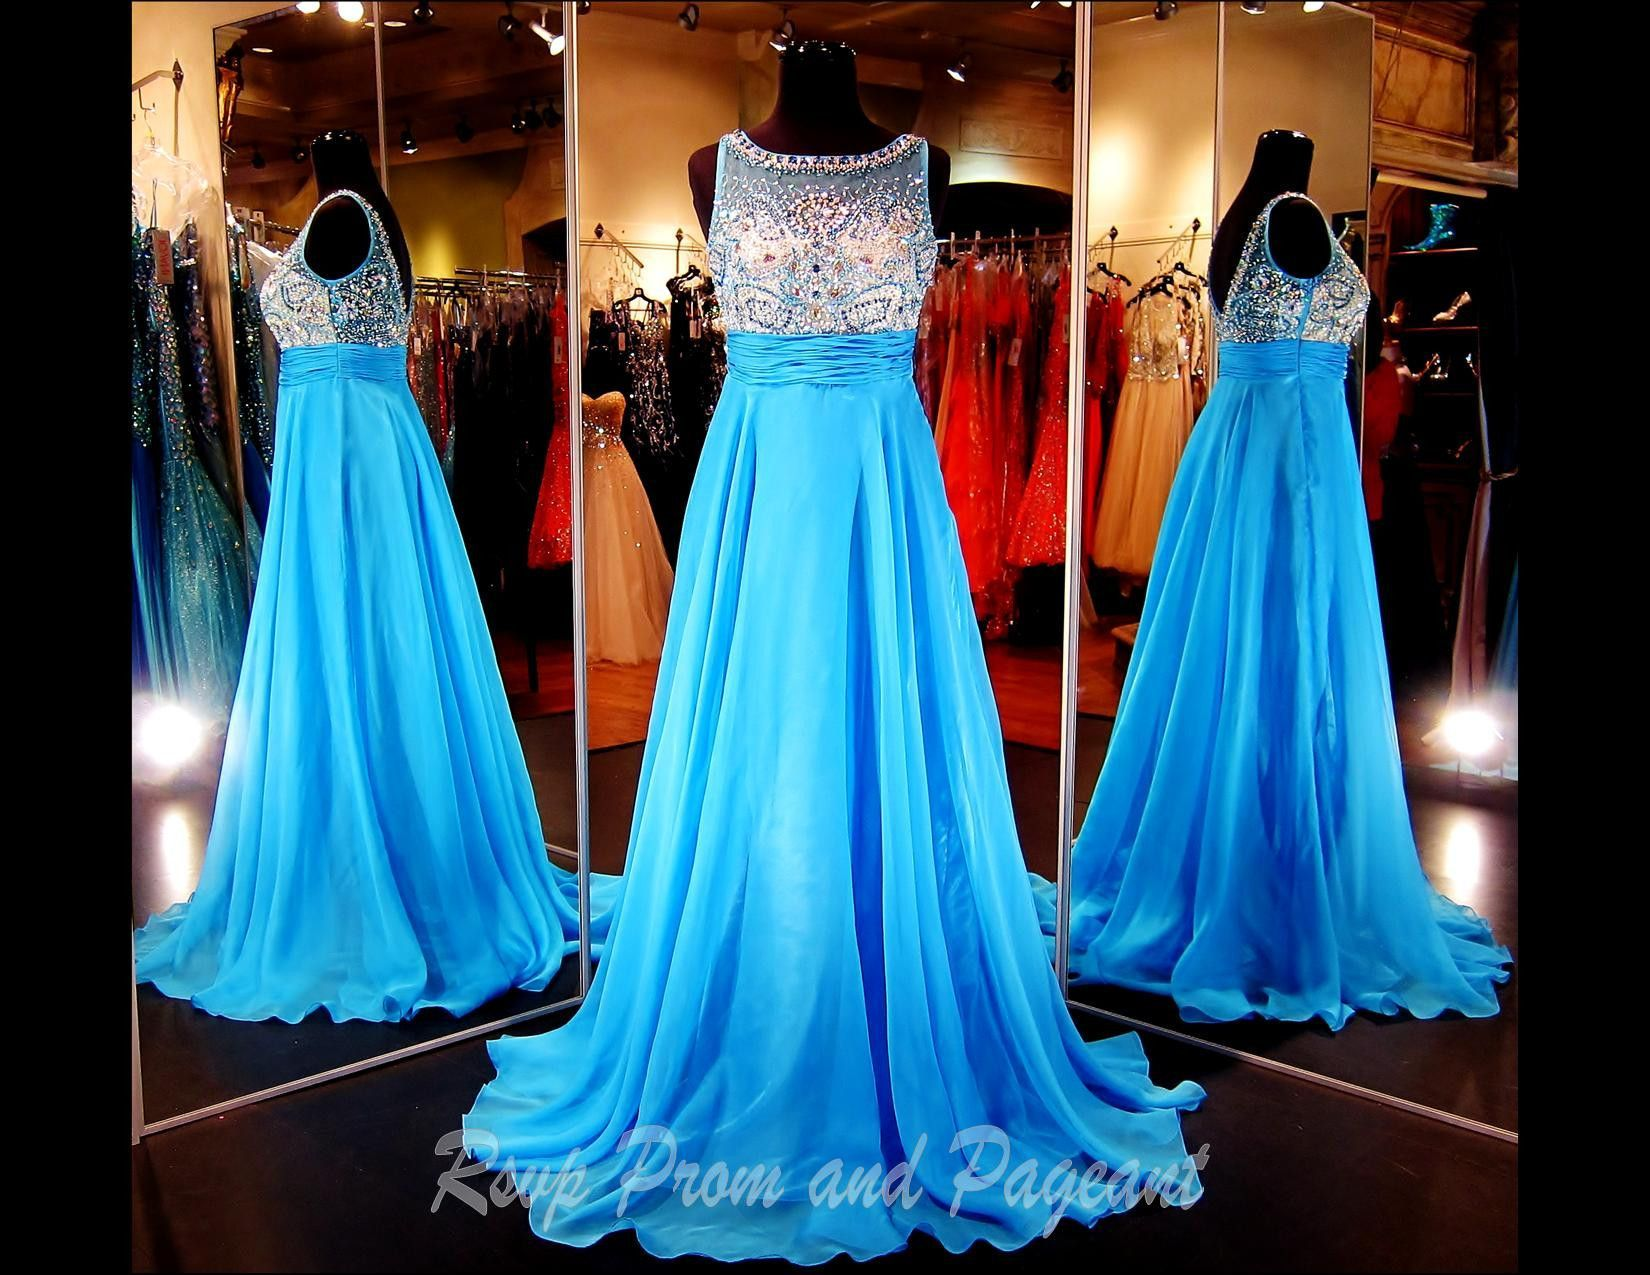 Blue High Neck Chiffon Prom Dress (SALE) | Prom, Pageants and Flow